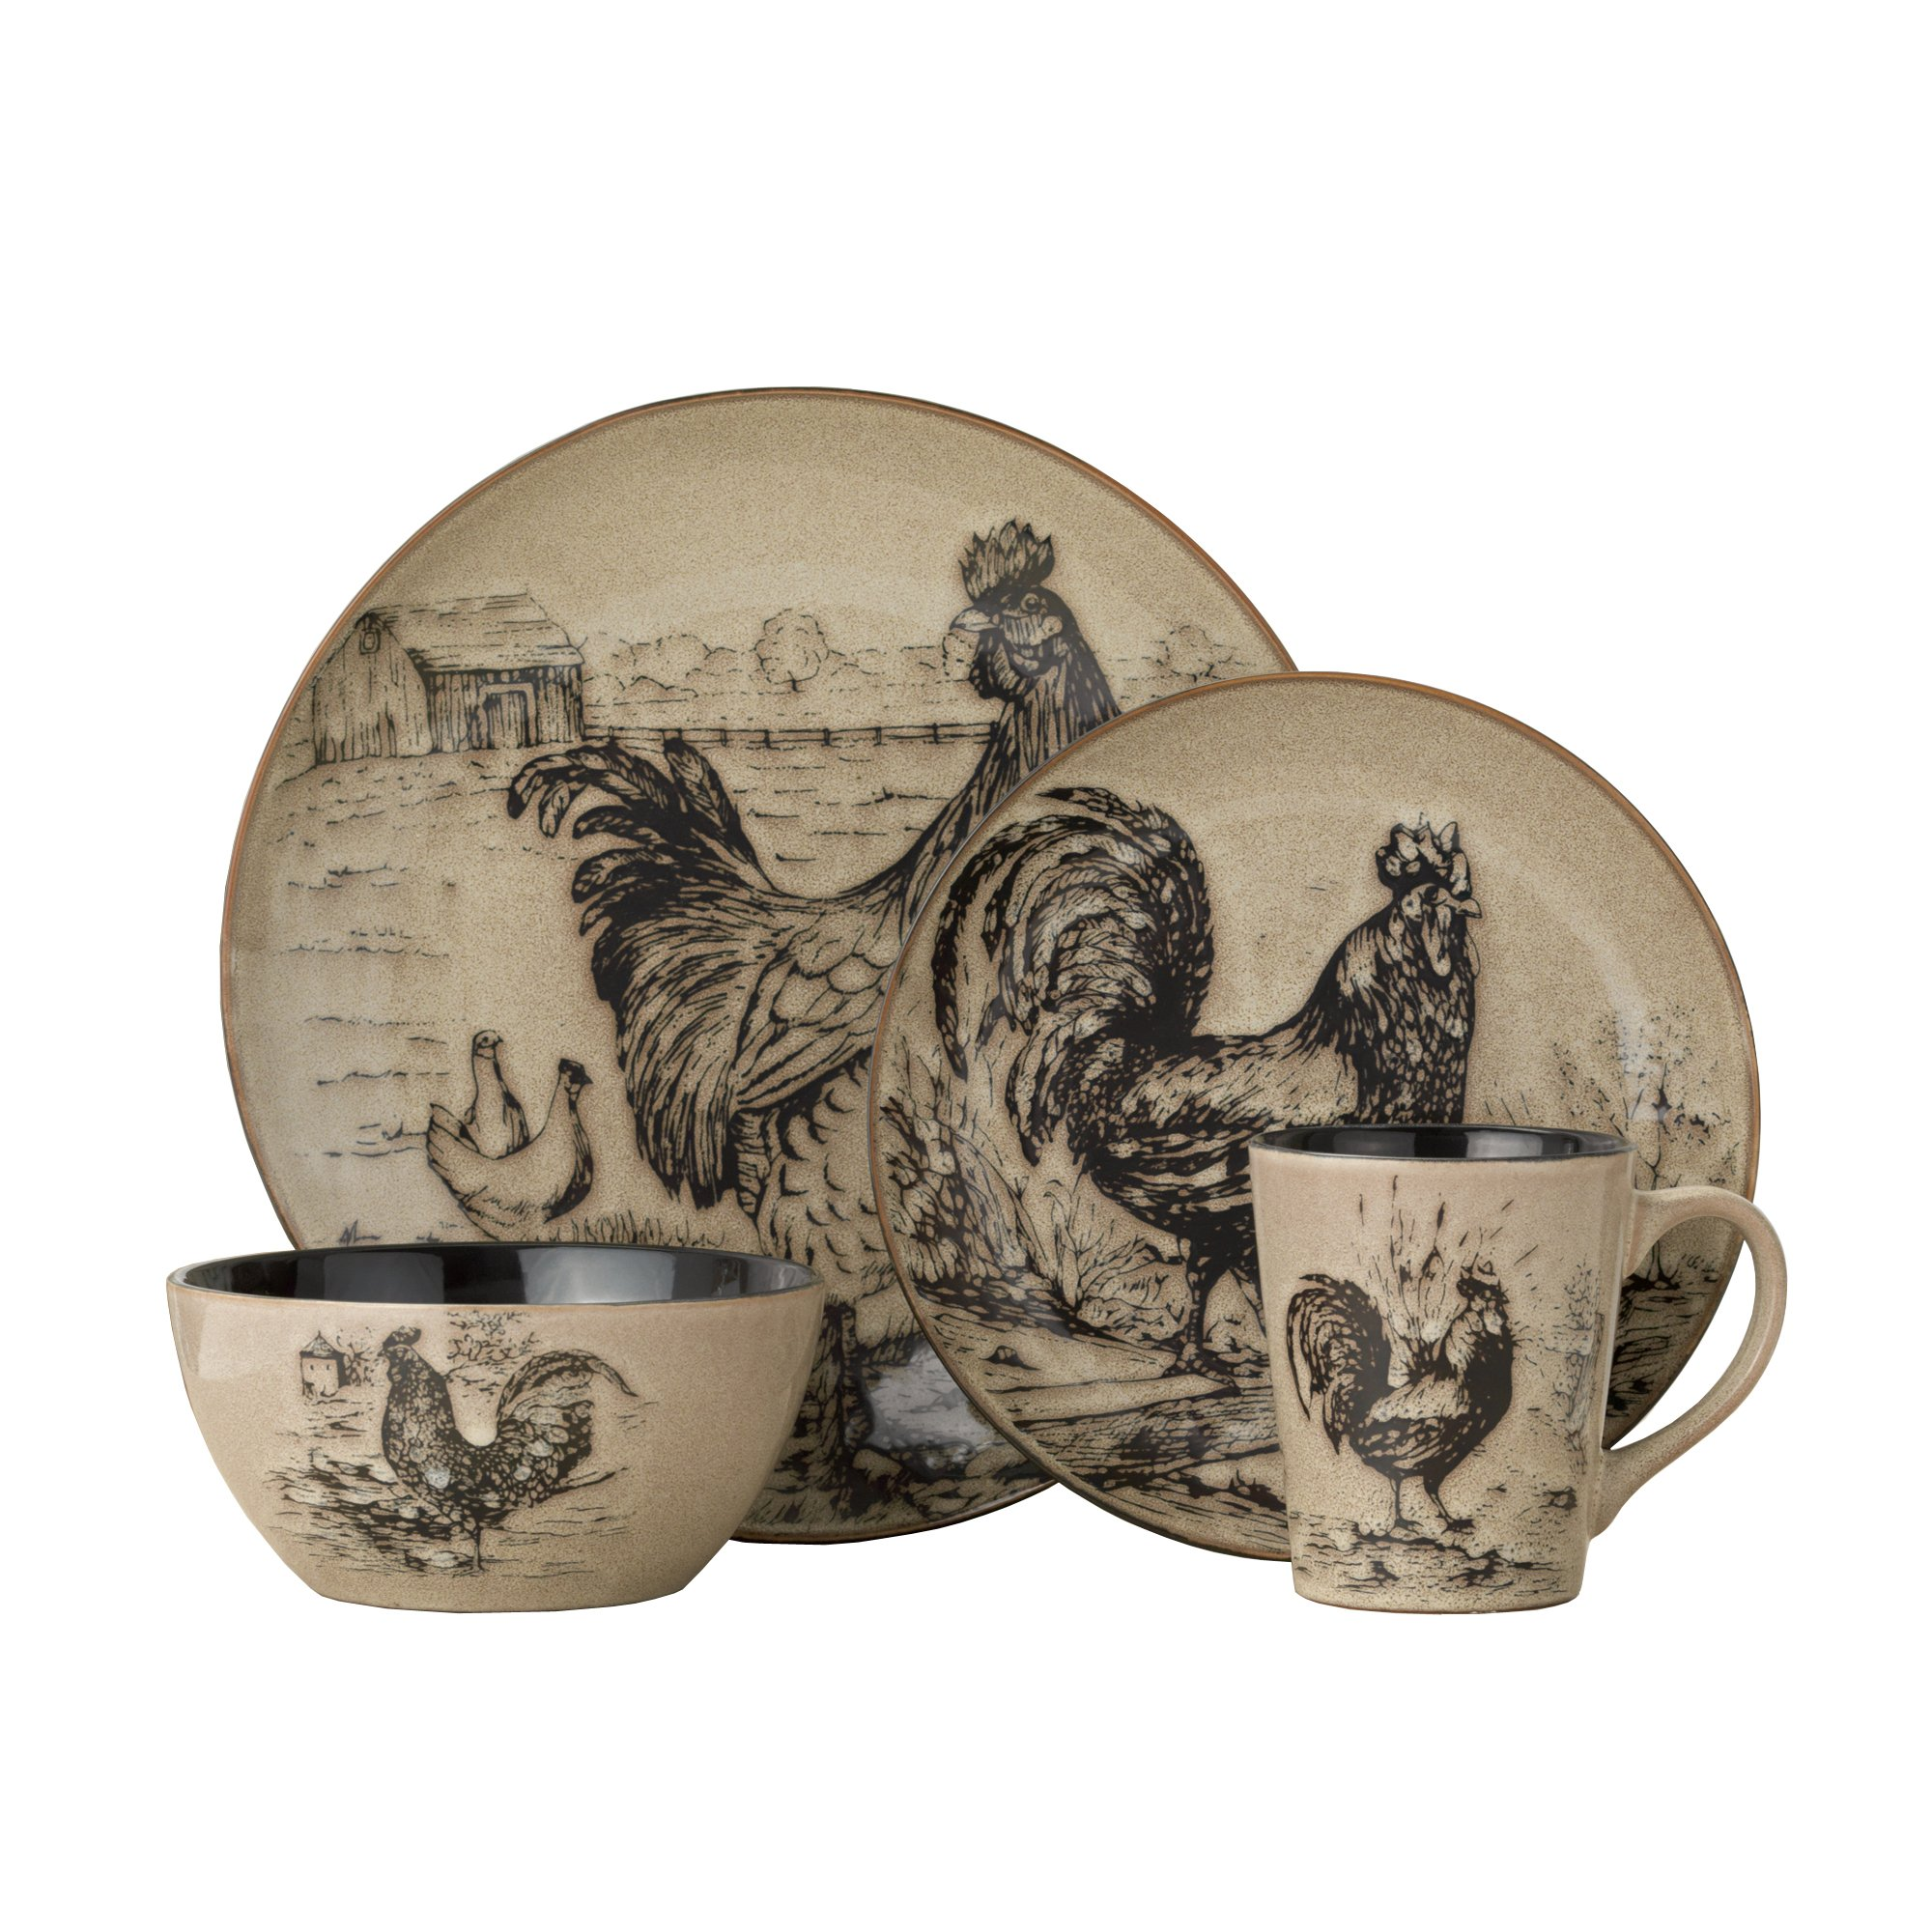 Pfaltzgraff Homespun Rooster 16-Piece Dinnerware Set, Service for 4 by Pfaltzgraff